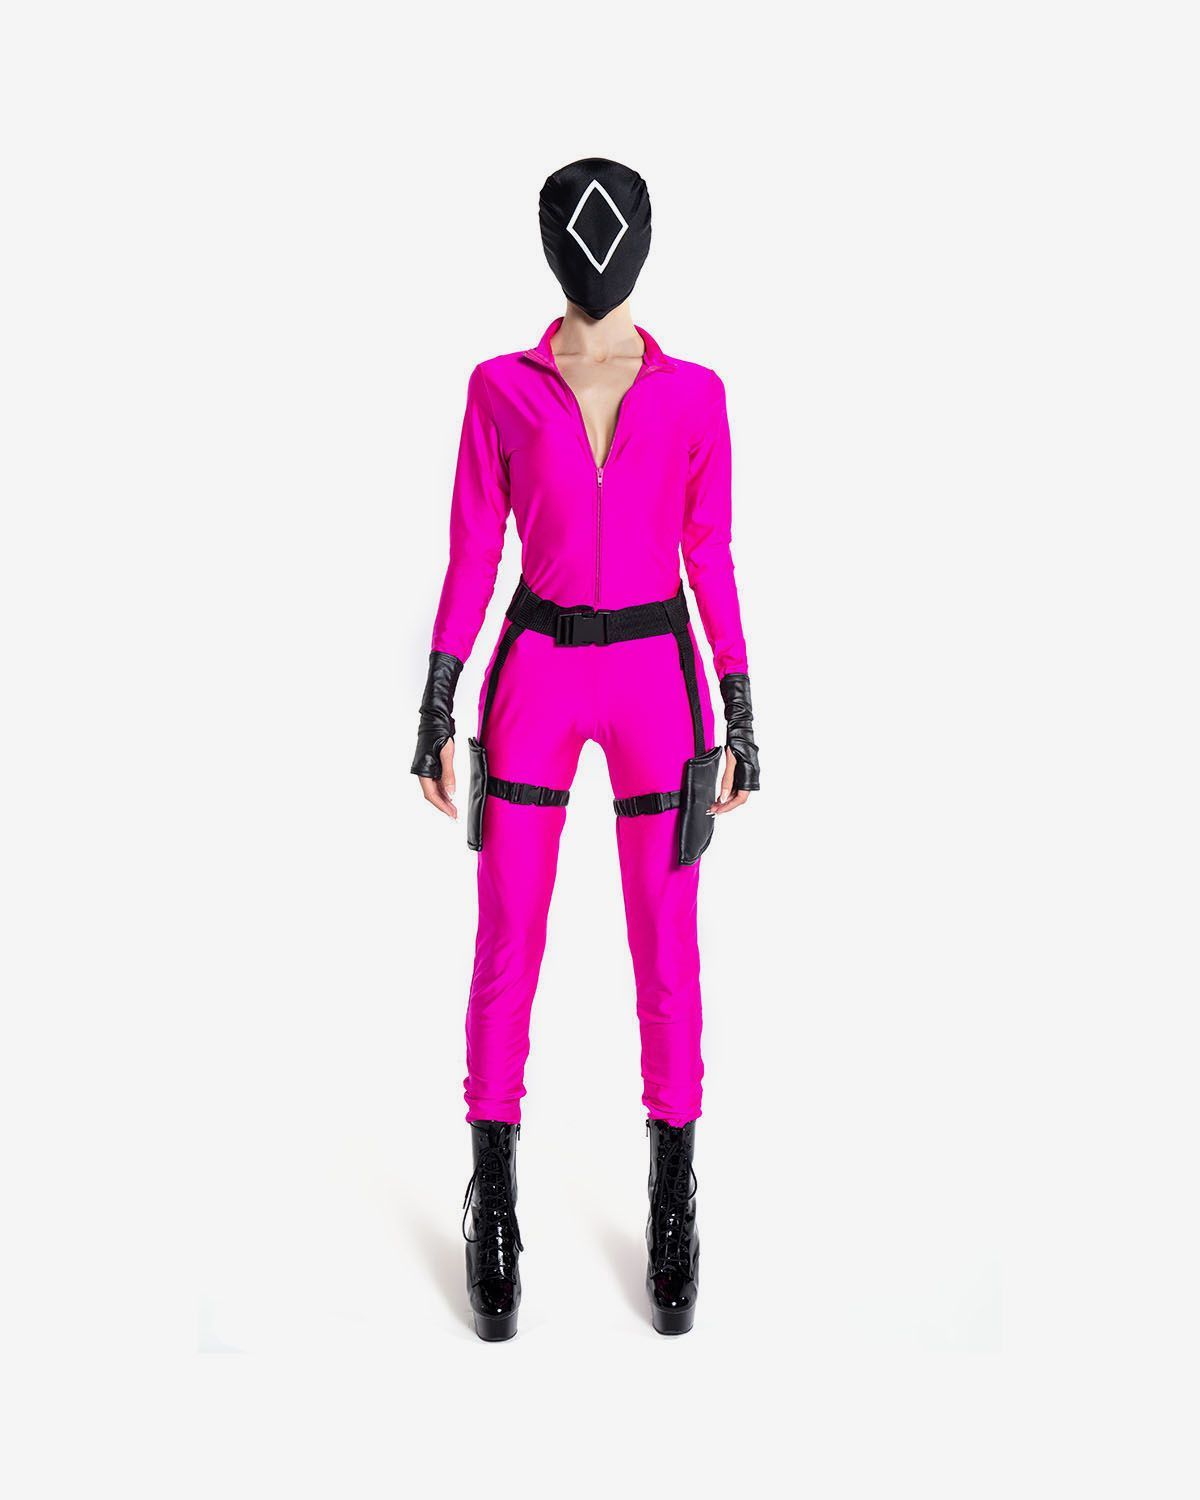 I Regret to Inform You That a Sexy 'Squid Game' Costume Exists